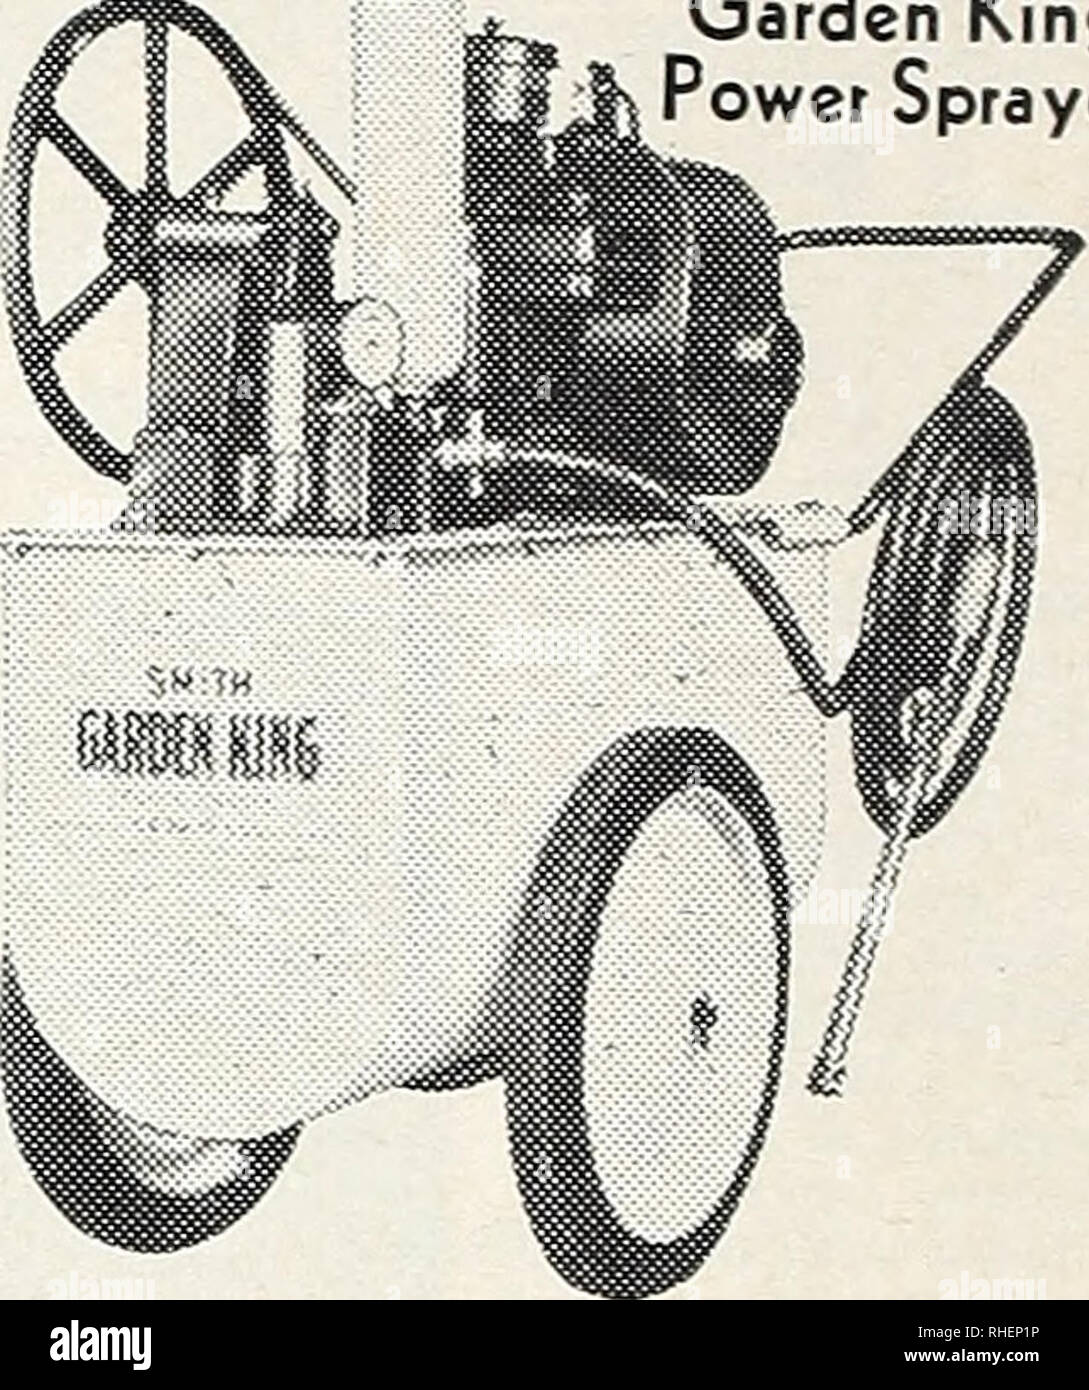 """. Bolgiano's capitol city seeds : 1960. Nurseries (Horticulture) Catalogs; Bulbs (Plants) Catalogs; Vegetables Catalogs; Garden tools Catalogs; Seeds Catalogs. Model H766. (As illustrated) $9 95 Model H737 6 95 Model H754 3 95 Green Spot Sprinkler Aids H-344 Gooseneck. Allows attachment of hose to faucet without skinning knuckles. Free swiveling action eliminates hose kinks at faucet. 90c. H-333-""""Y"""" Connector. A connection that lets one outlet do the work of two. Two hoses may be attached to a single faucet, allowing two accessories to be operated simultaneously. 85c. Smith Garden Ki - Stock Image"""